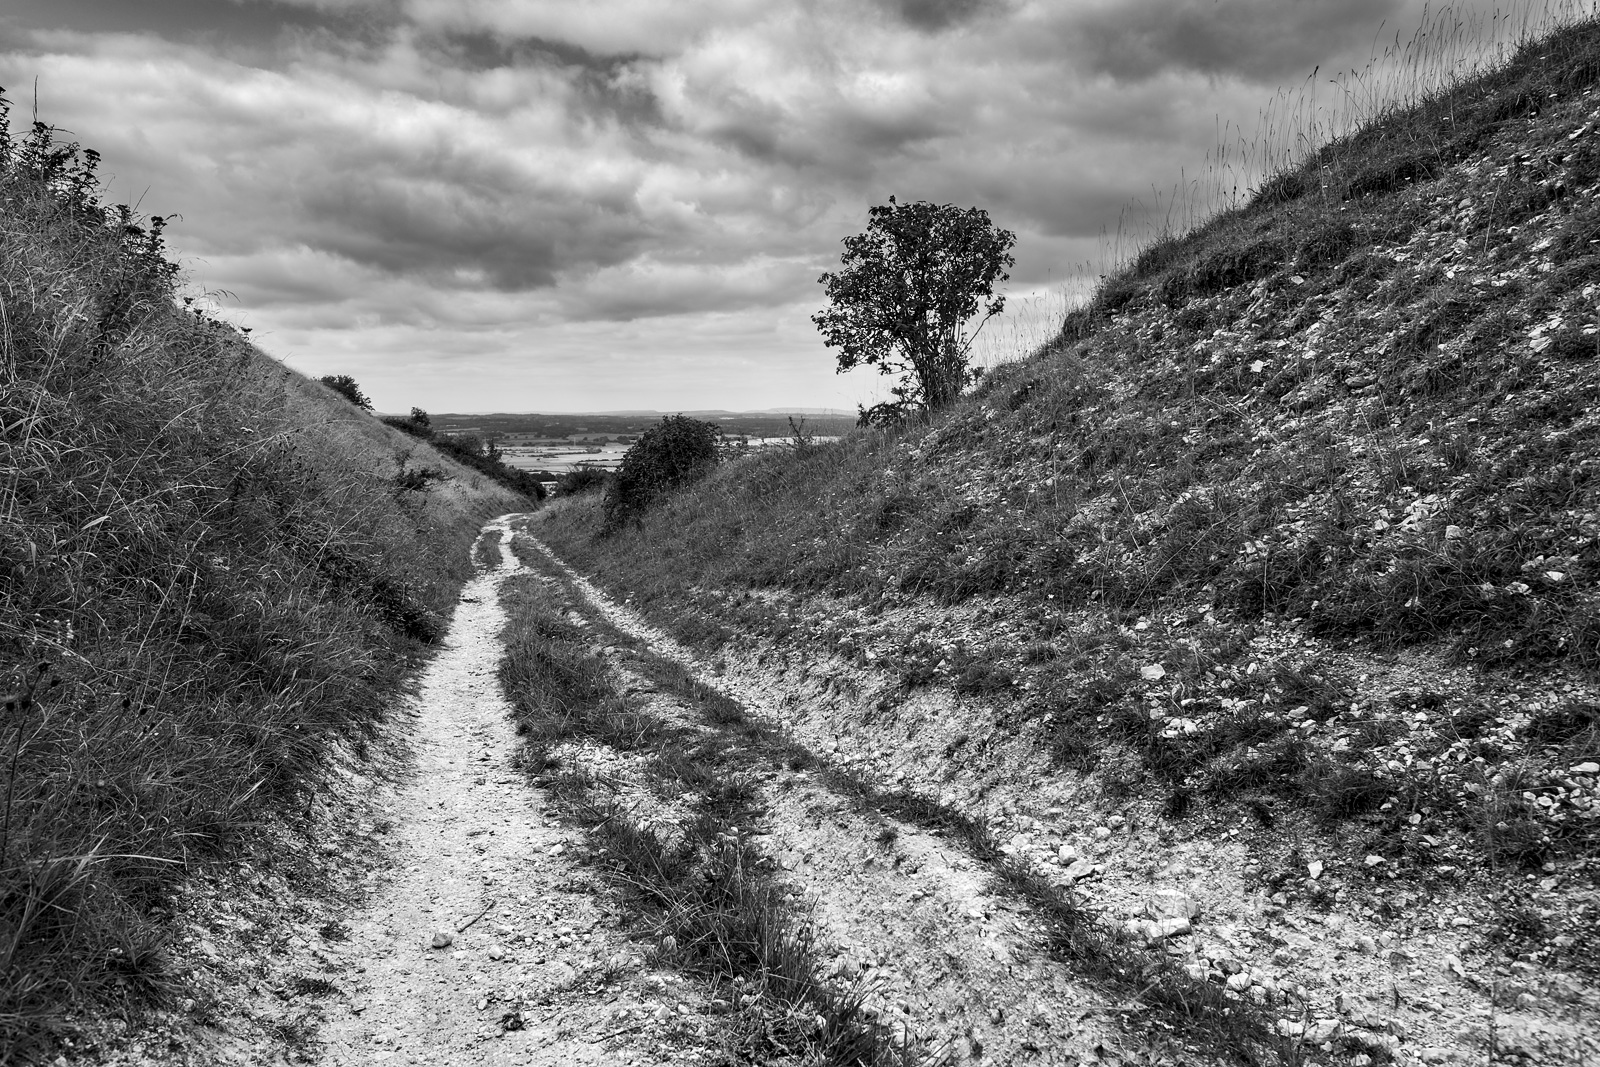 Chalk path with backed sides leading down hill with cloudy sky, shrubs and view west over sussex towards Hazelmere , strong leading lines black and white rural landscape photograph Truleigh Hill West Sussex UK ©P. Maton 2018 eyeteeth.net